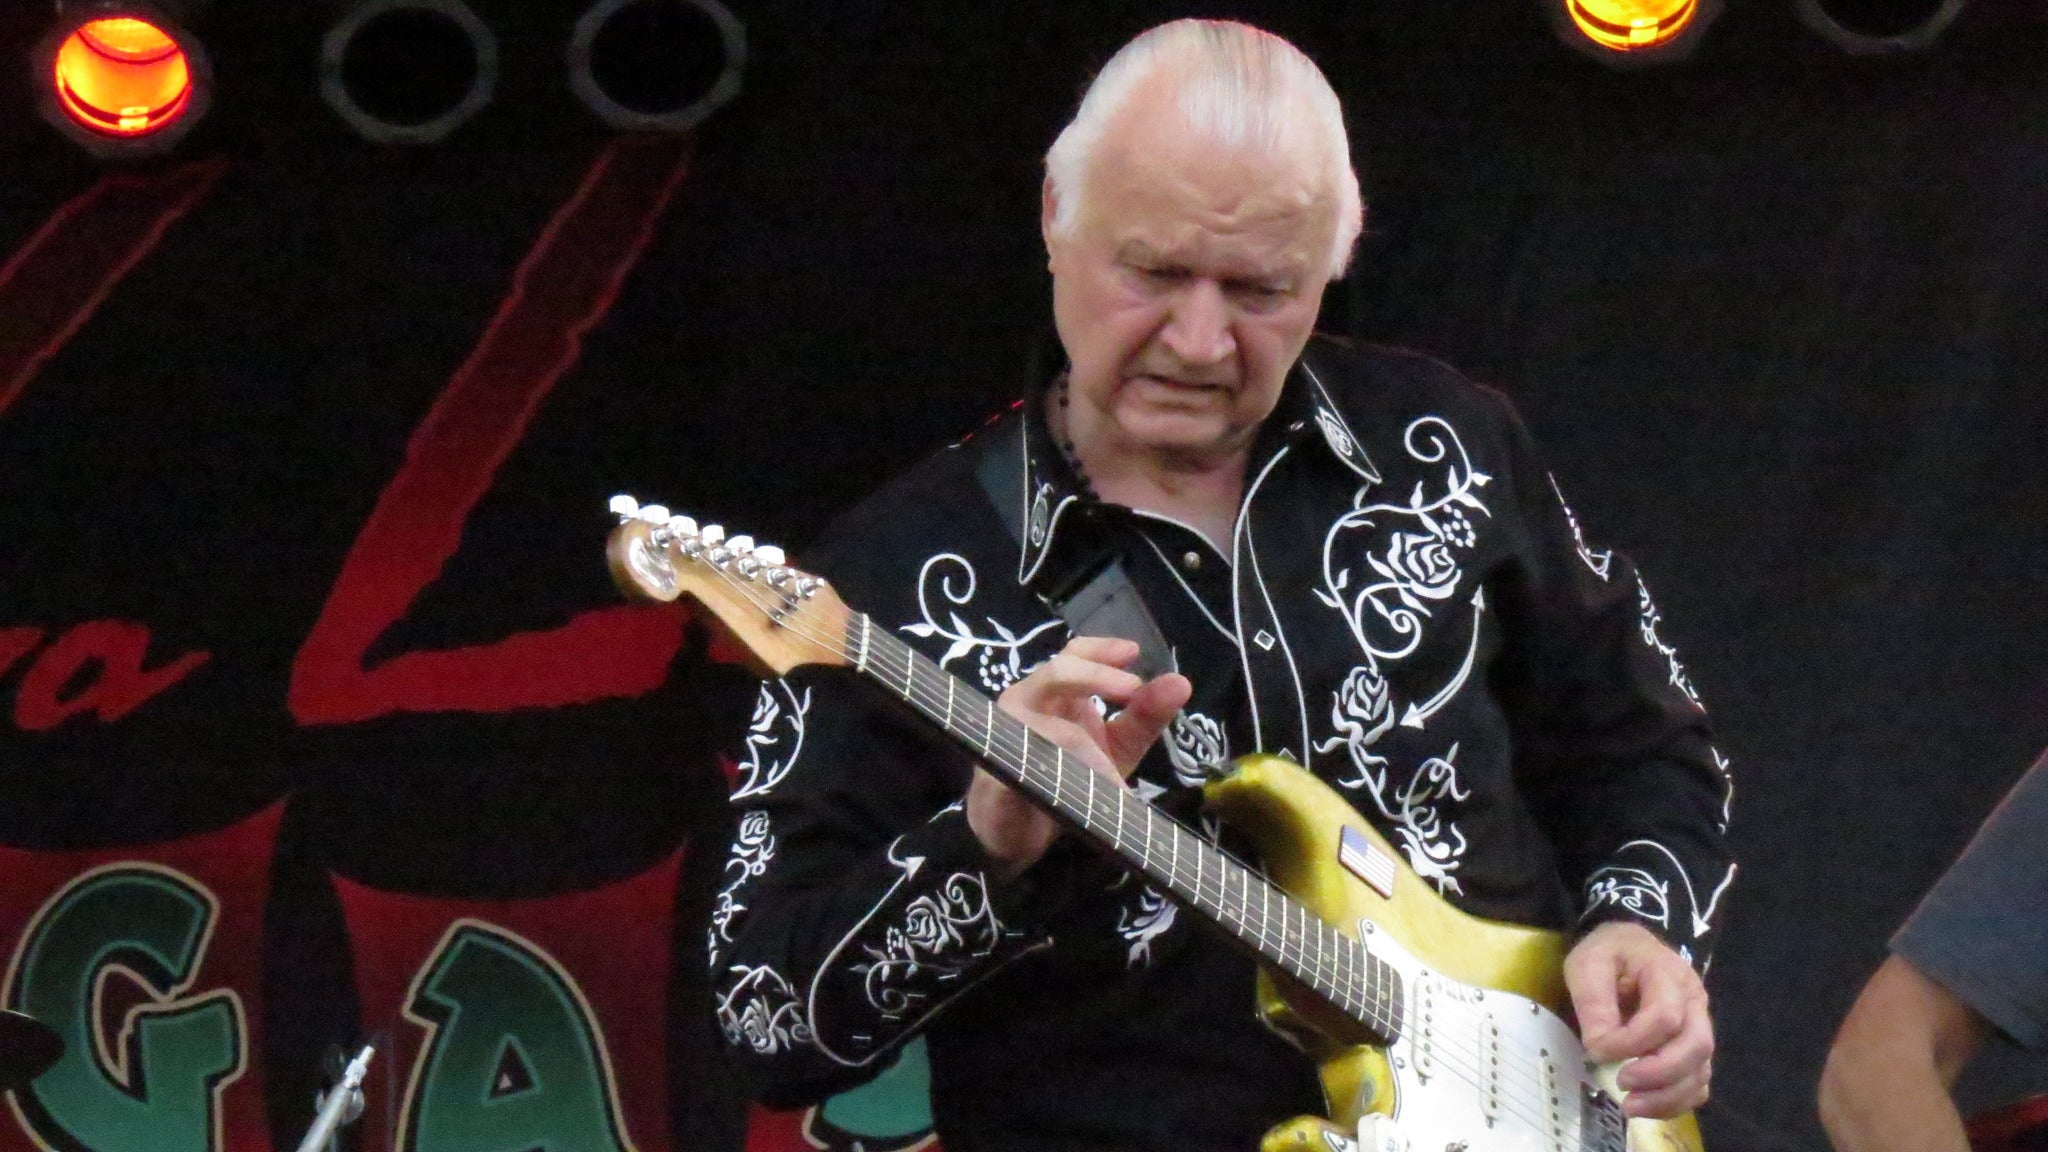 Dick Dale at The Coach House